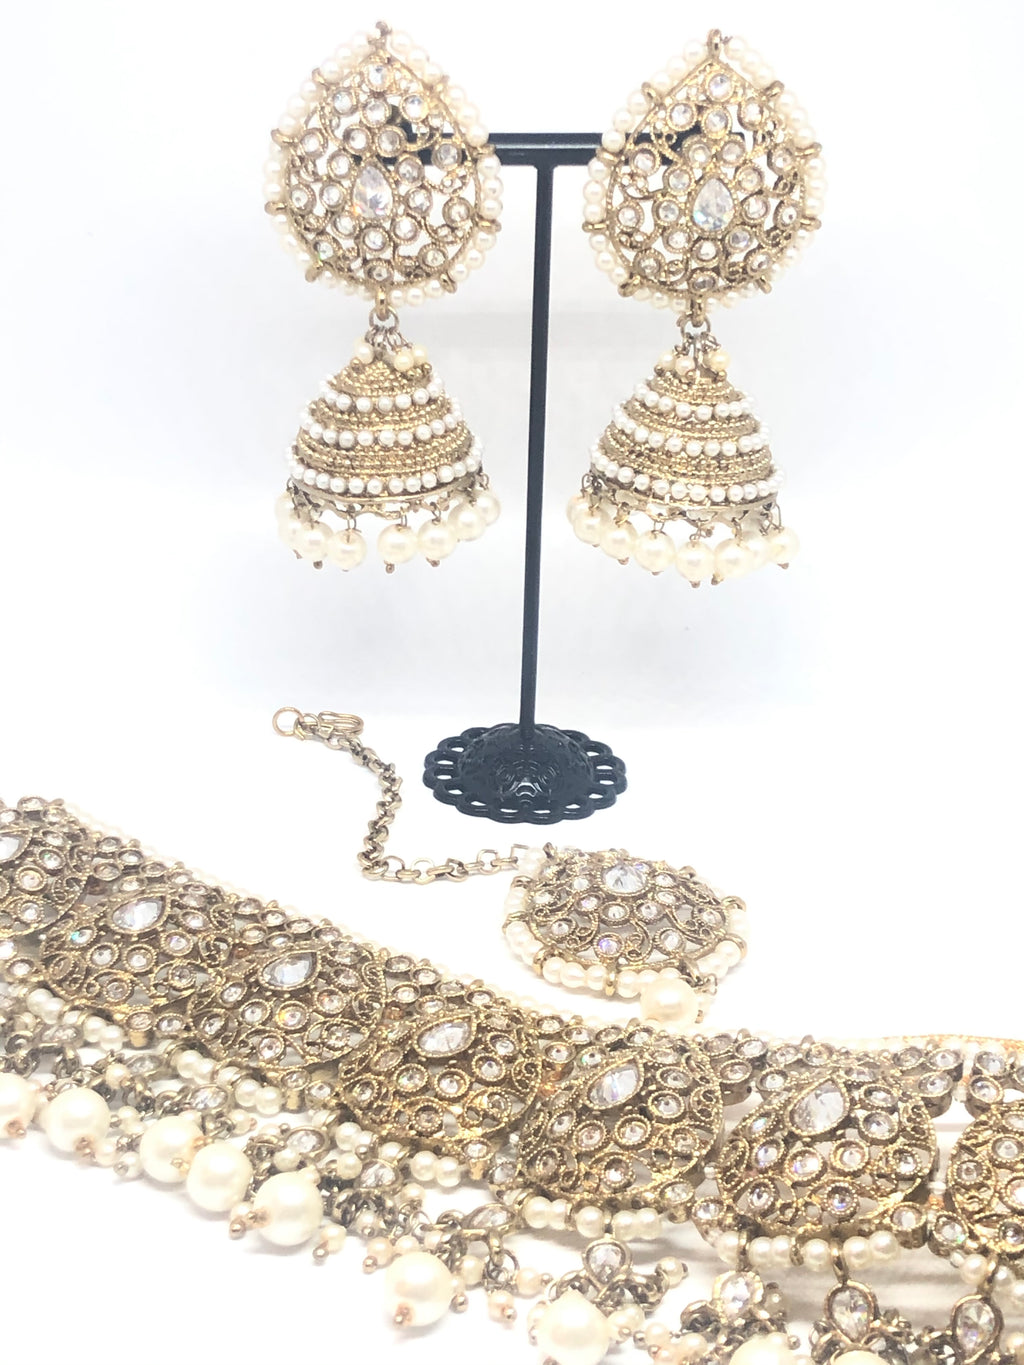 || ANIKA || Choker Necklace with Earrings & Tikka and White Pearls & Stones